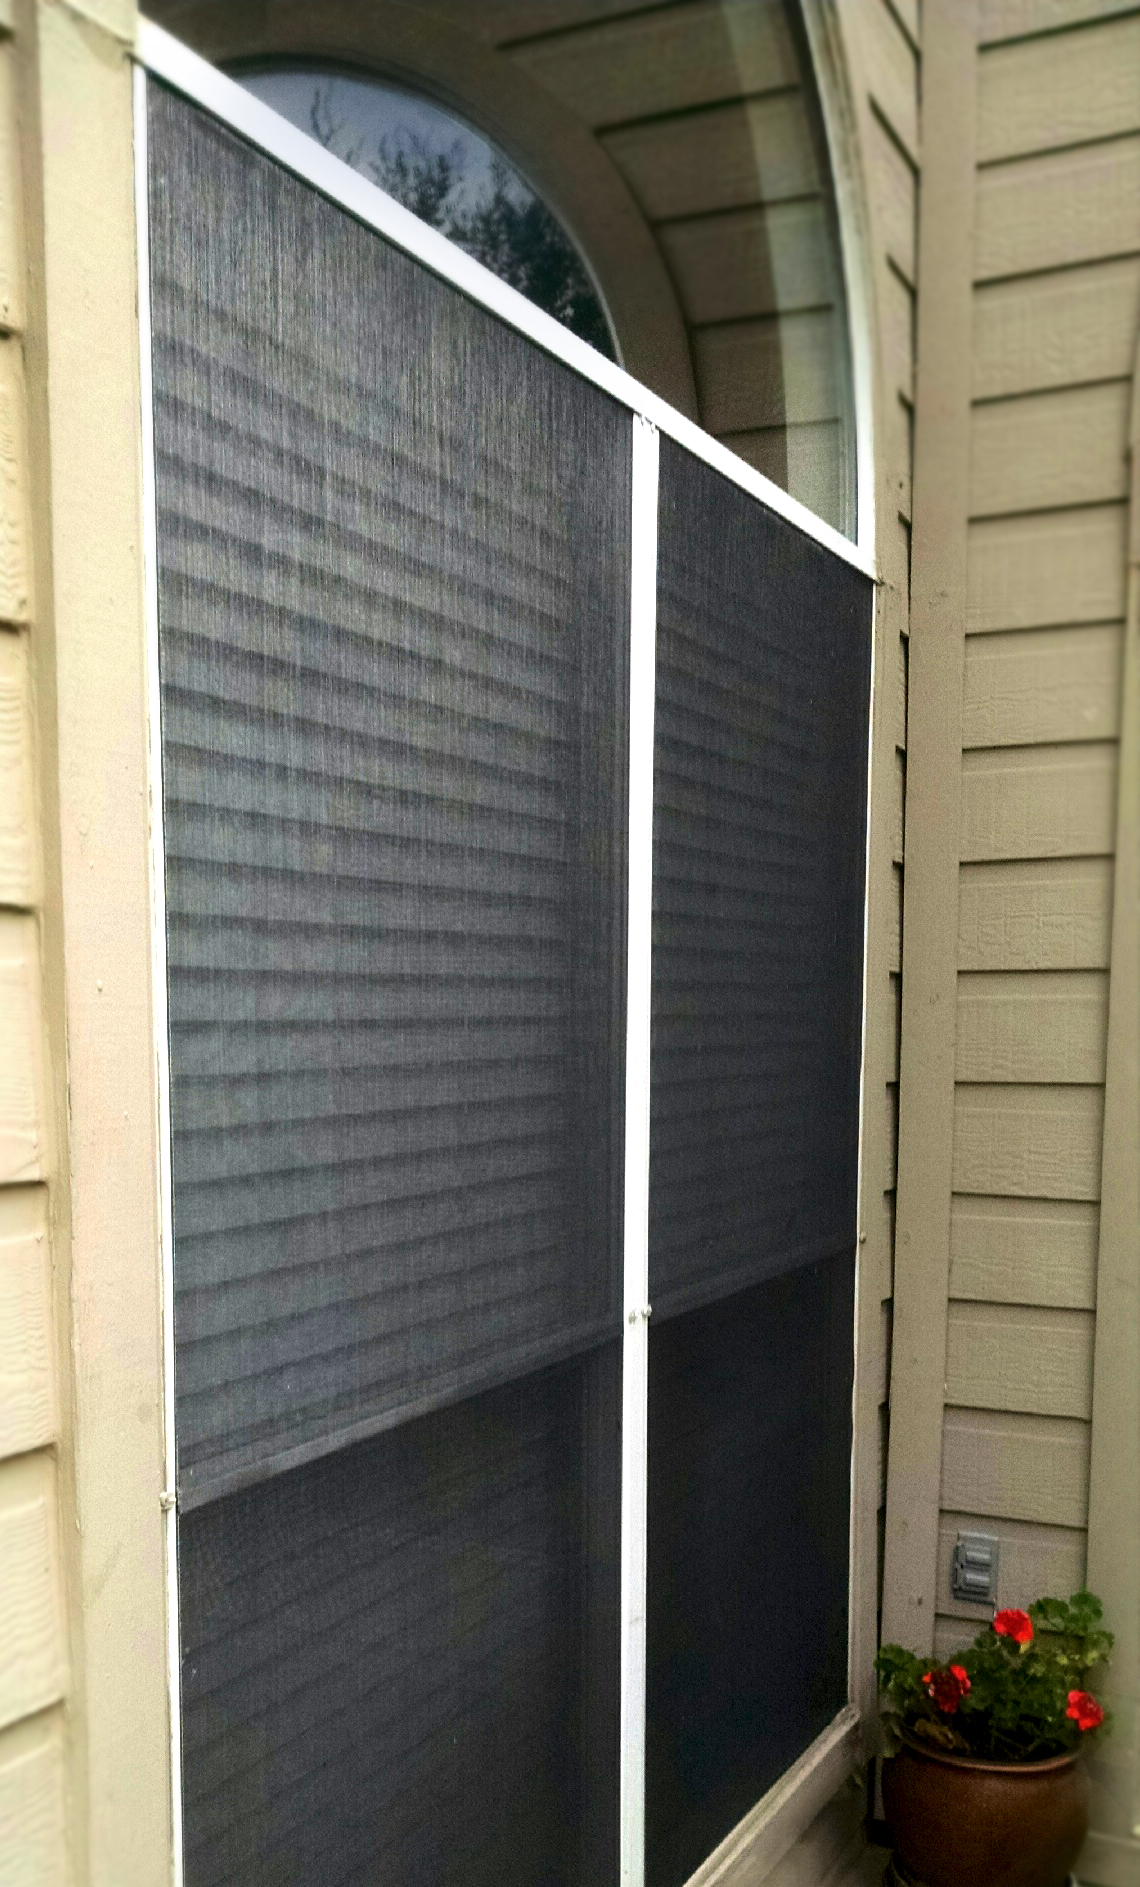 screen installation and repair for solar screens and. Black Bedroom Furniture Sets. Home Design Ideas